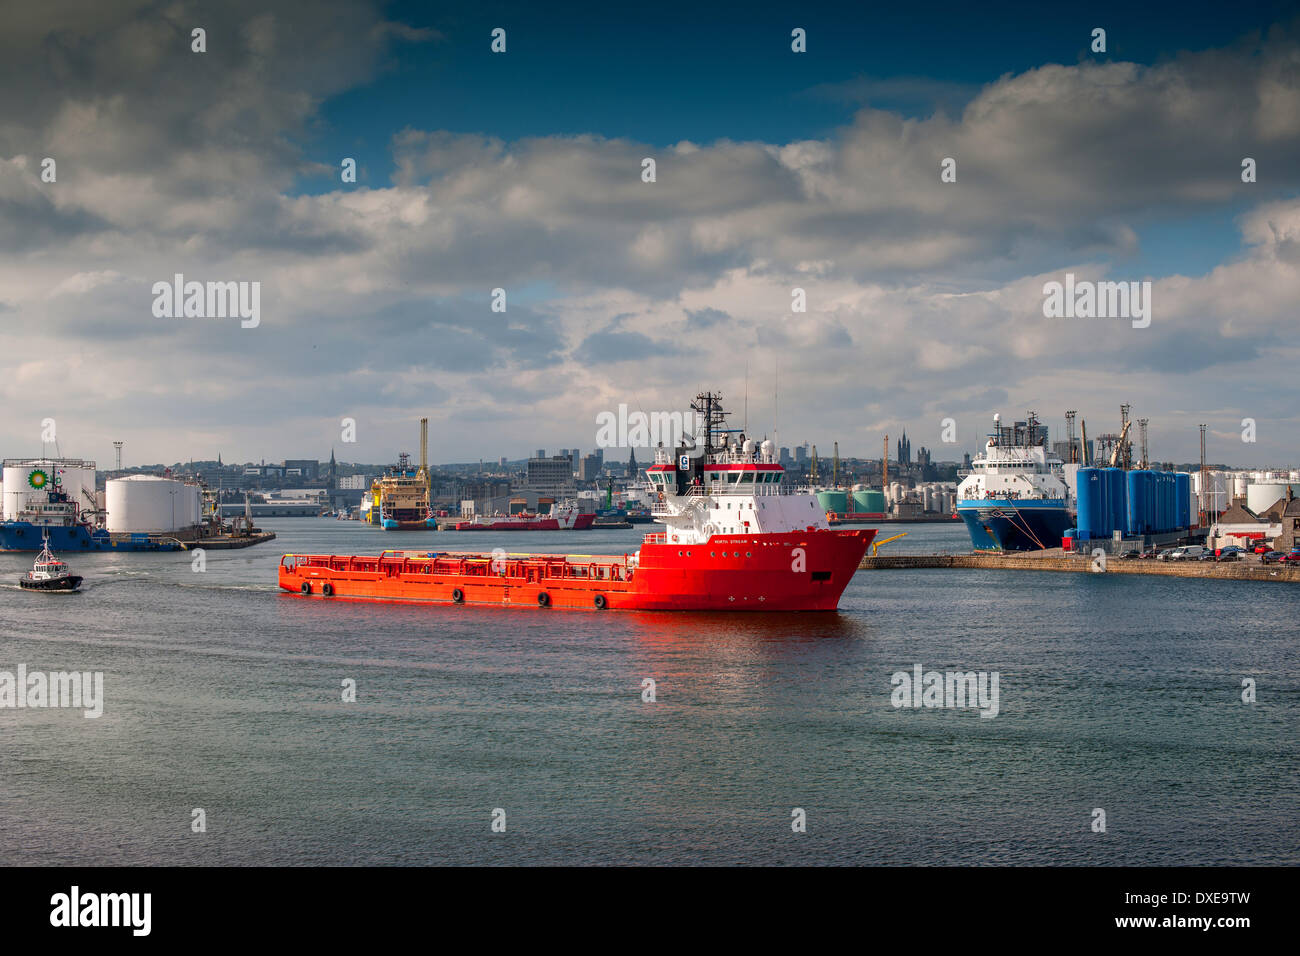 A busy scene in Aberdeen harbour with oil related ships and vessels in view.Aberdeenshire,scotland. - Stock Image